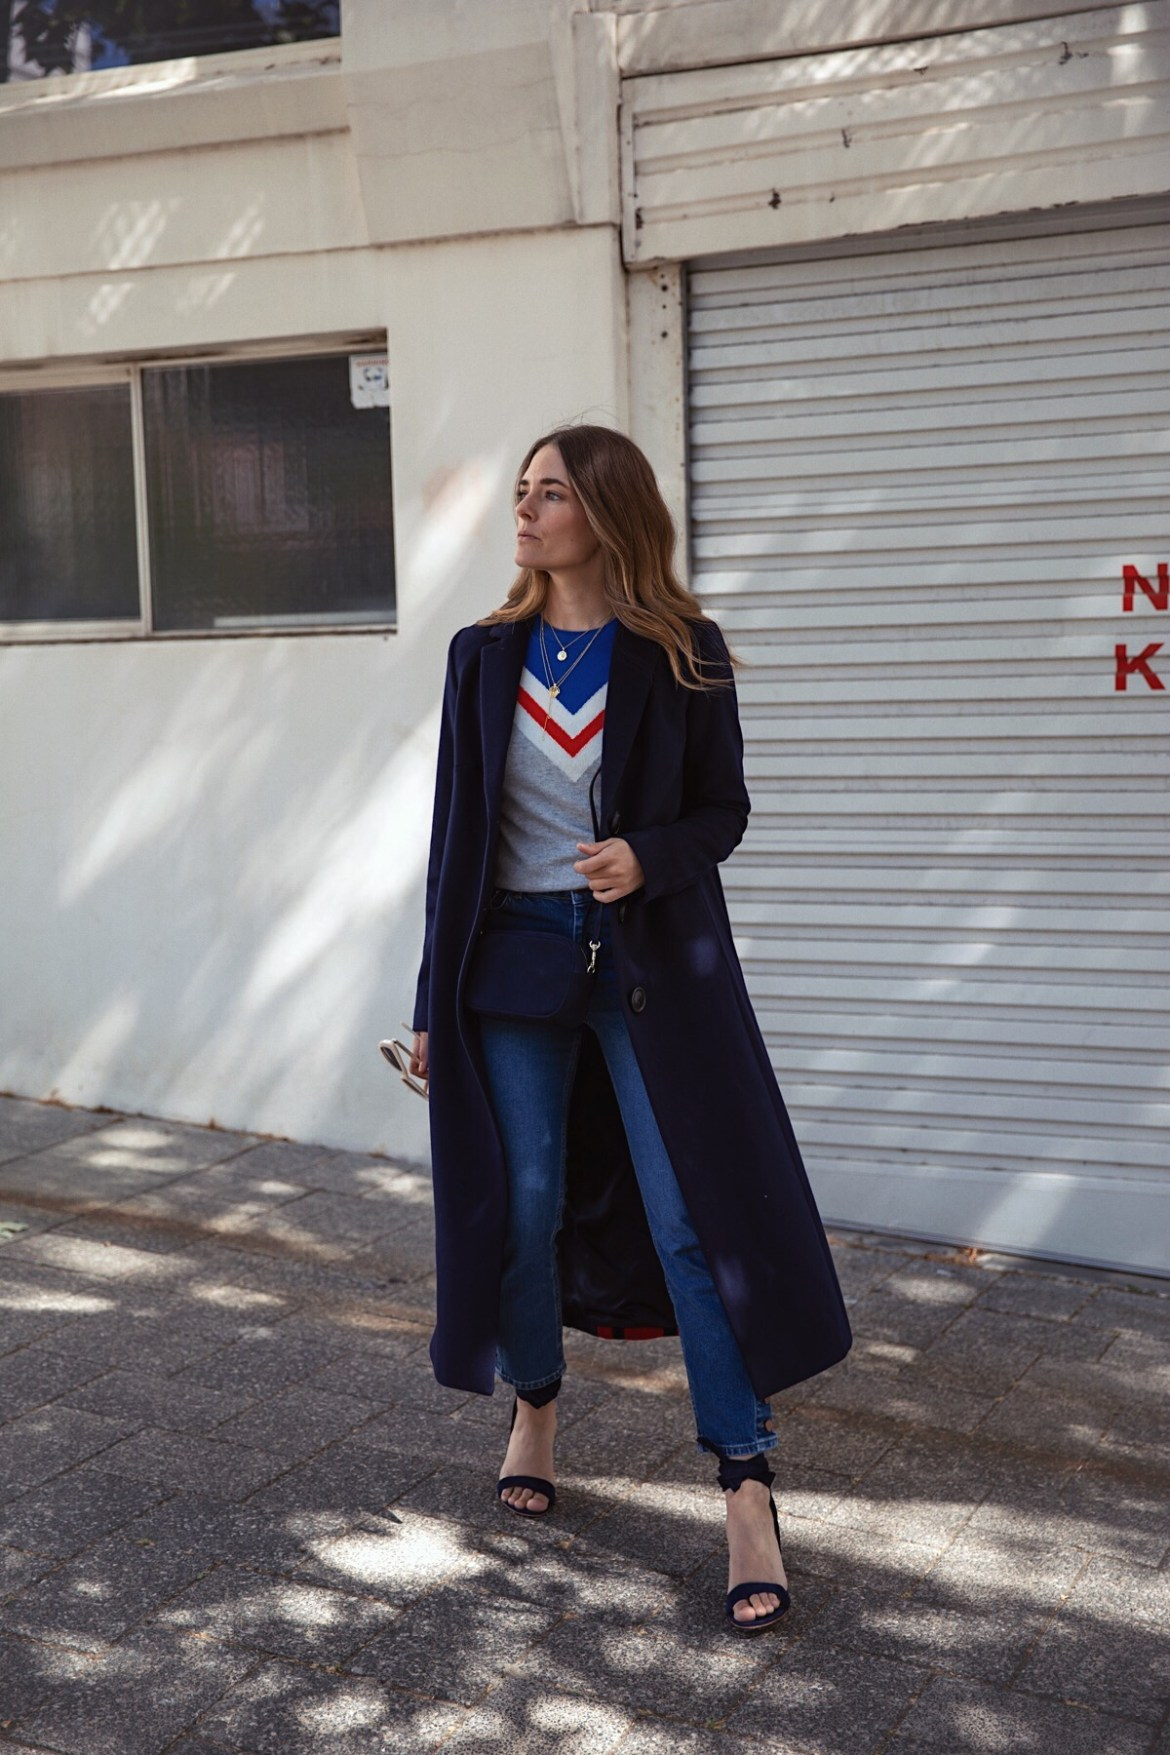 Boden street style outfit with navy coat, suede heels, cashmere knit, cat-eye sunglasses and jeans worn by Inspiring Wit fashion blogger Jenelle